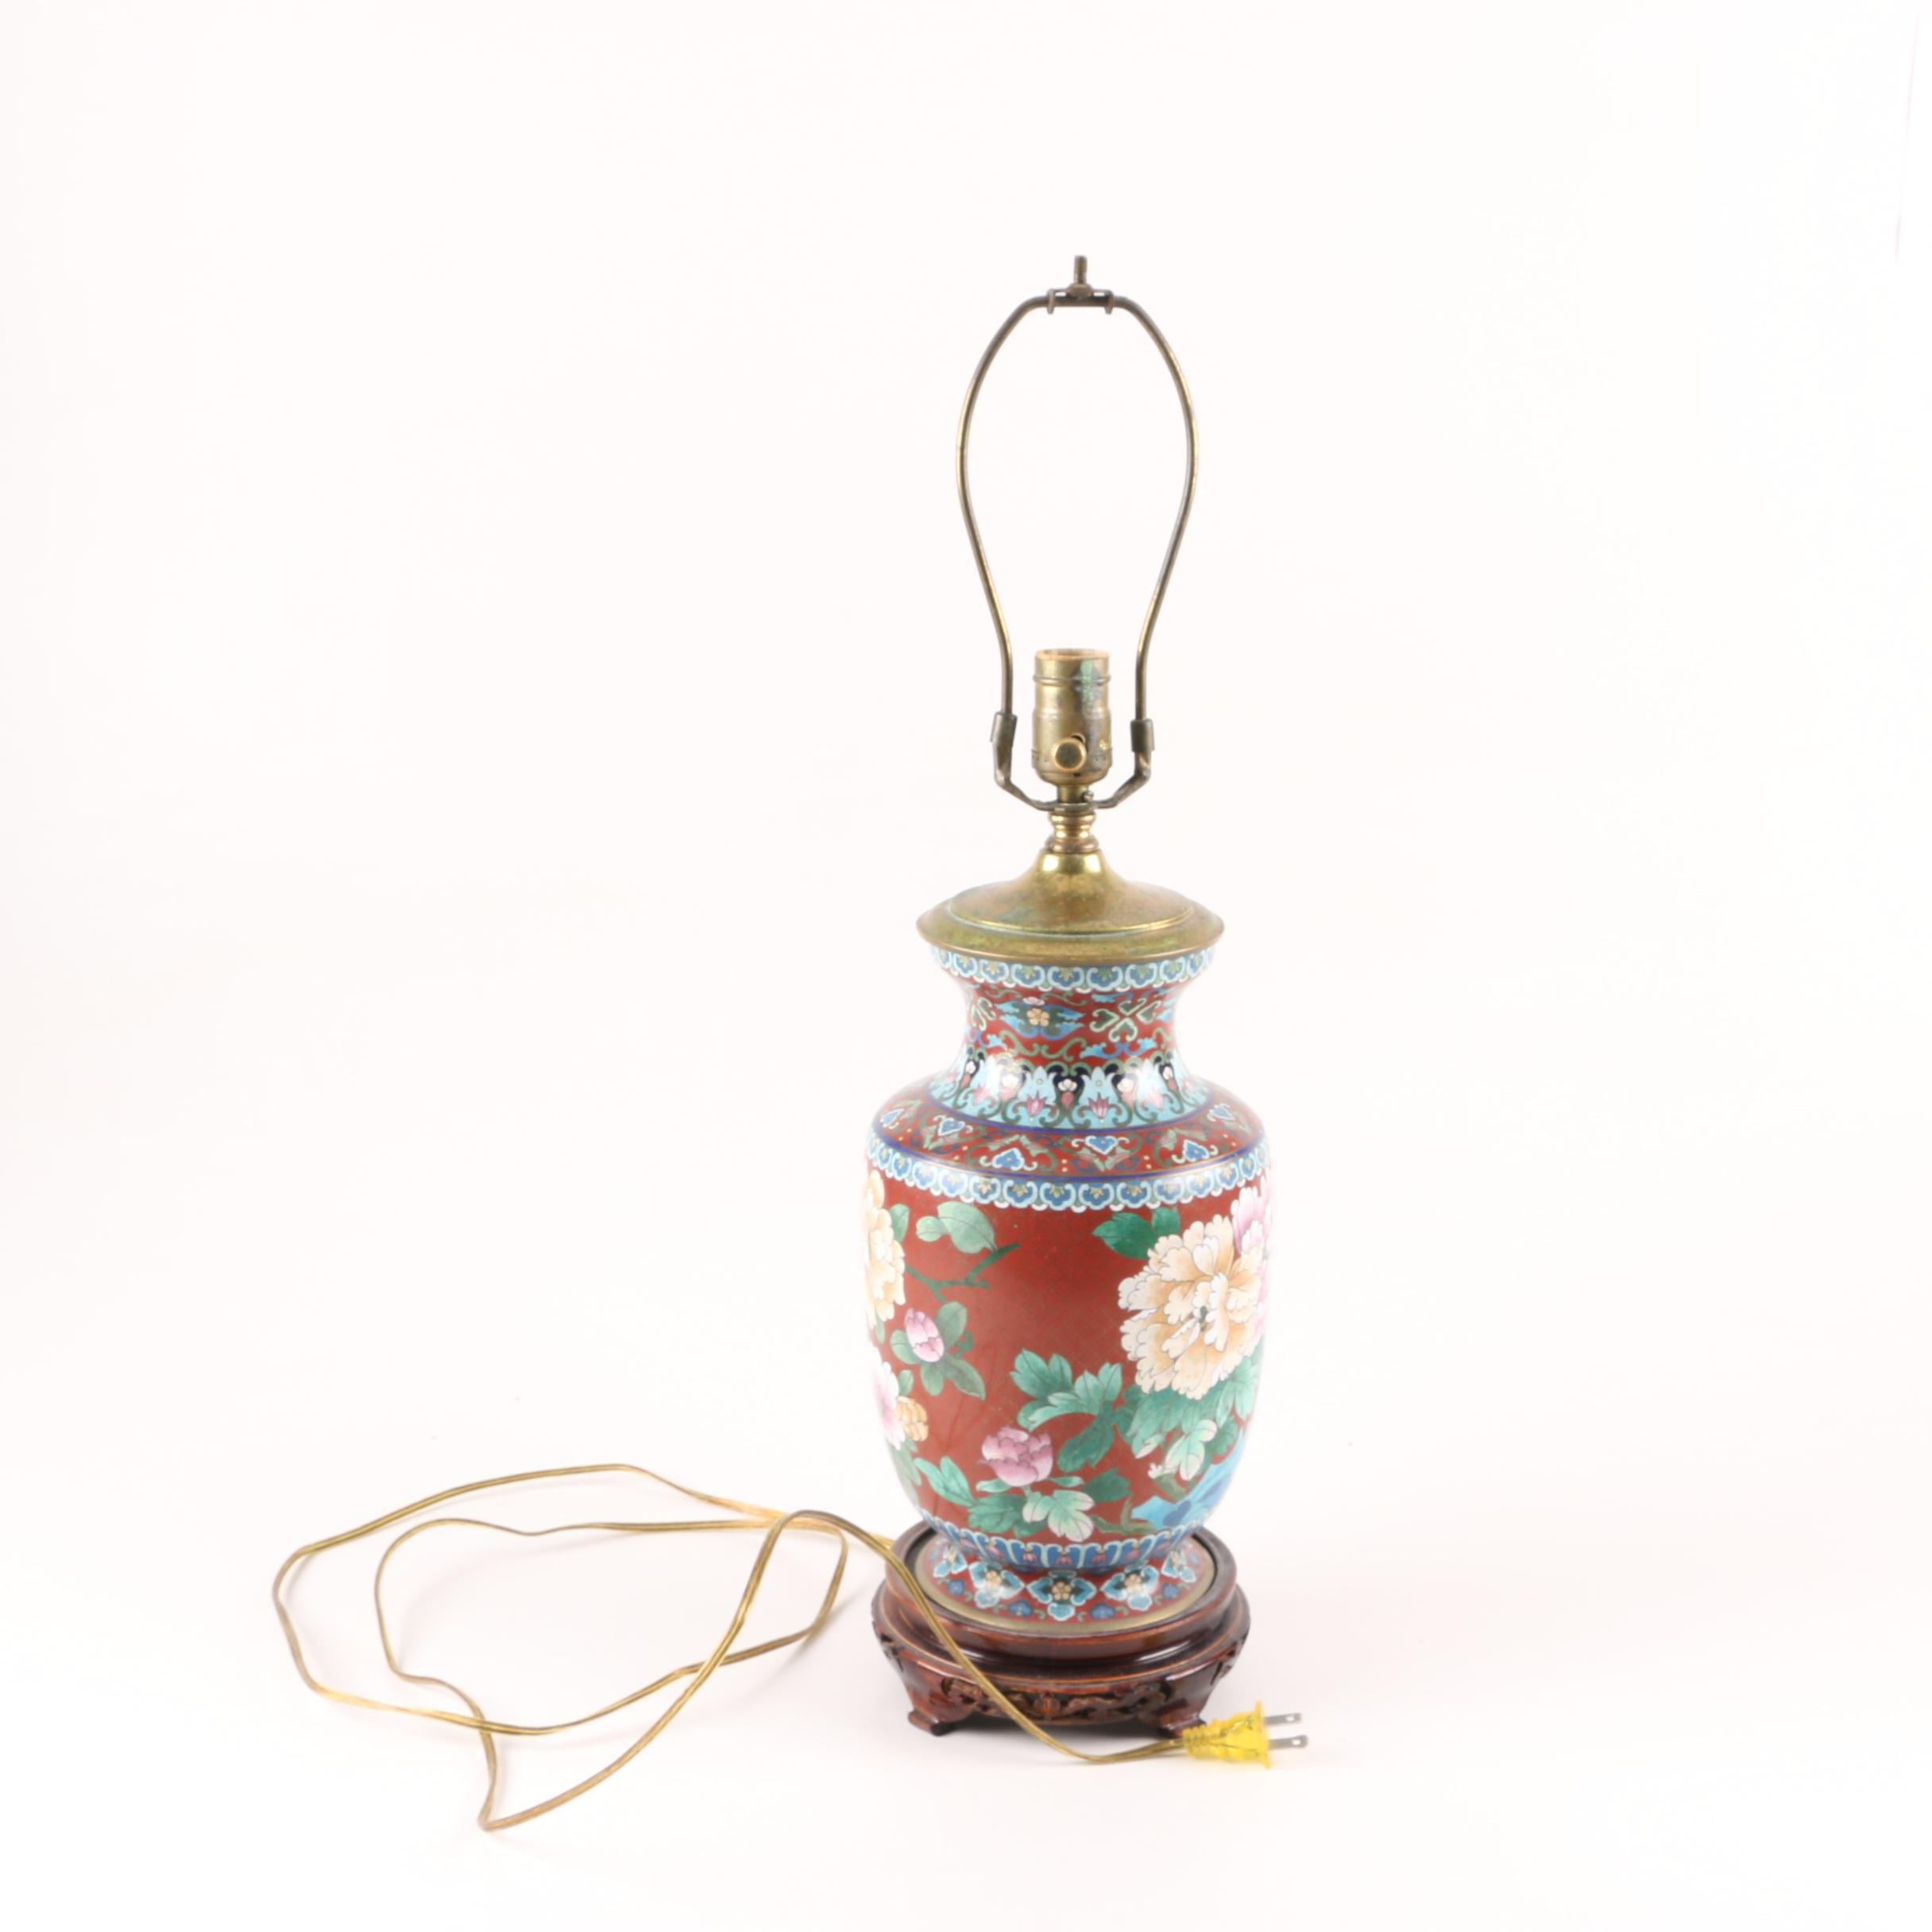 Metal Table Lamp with Painted Floral and Bird Motifs